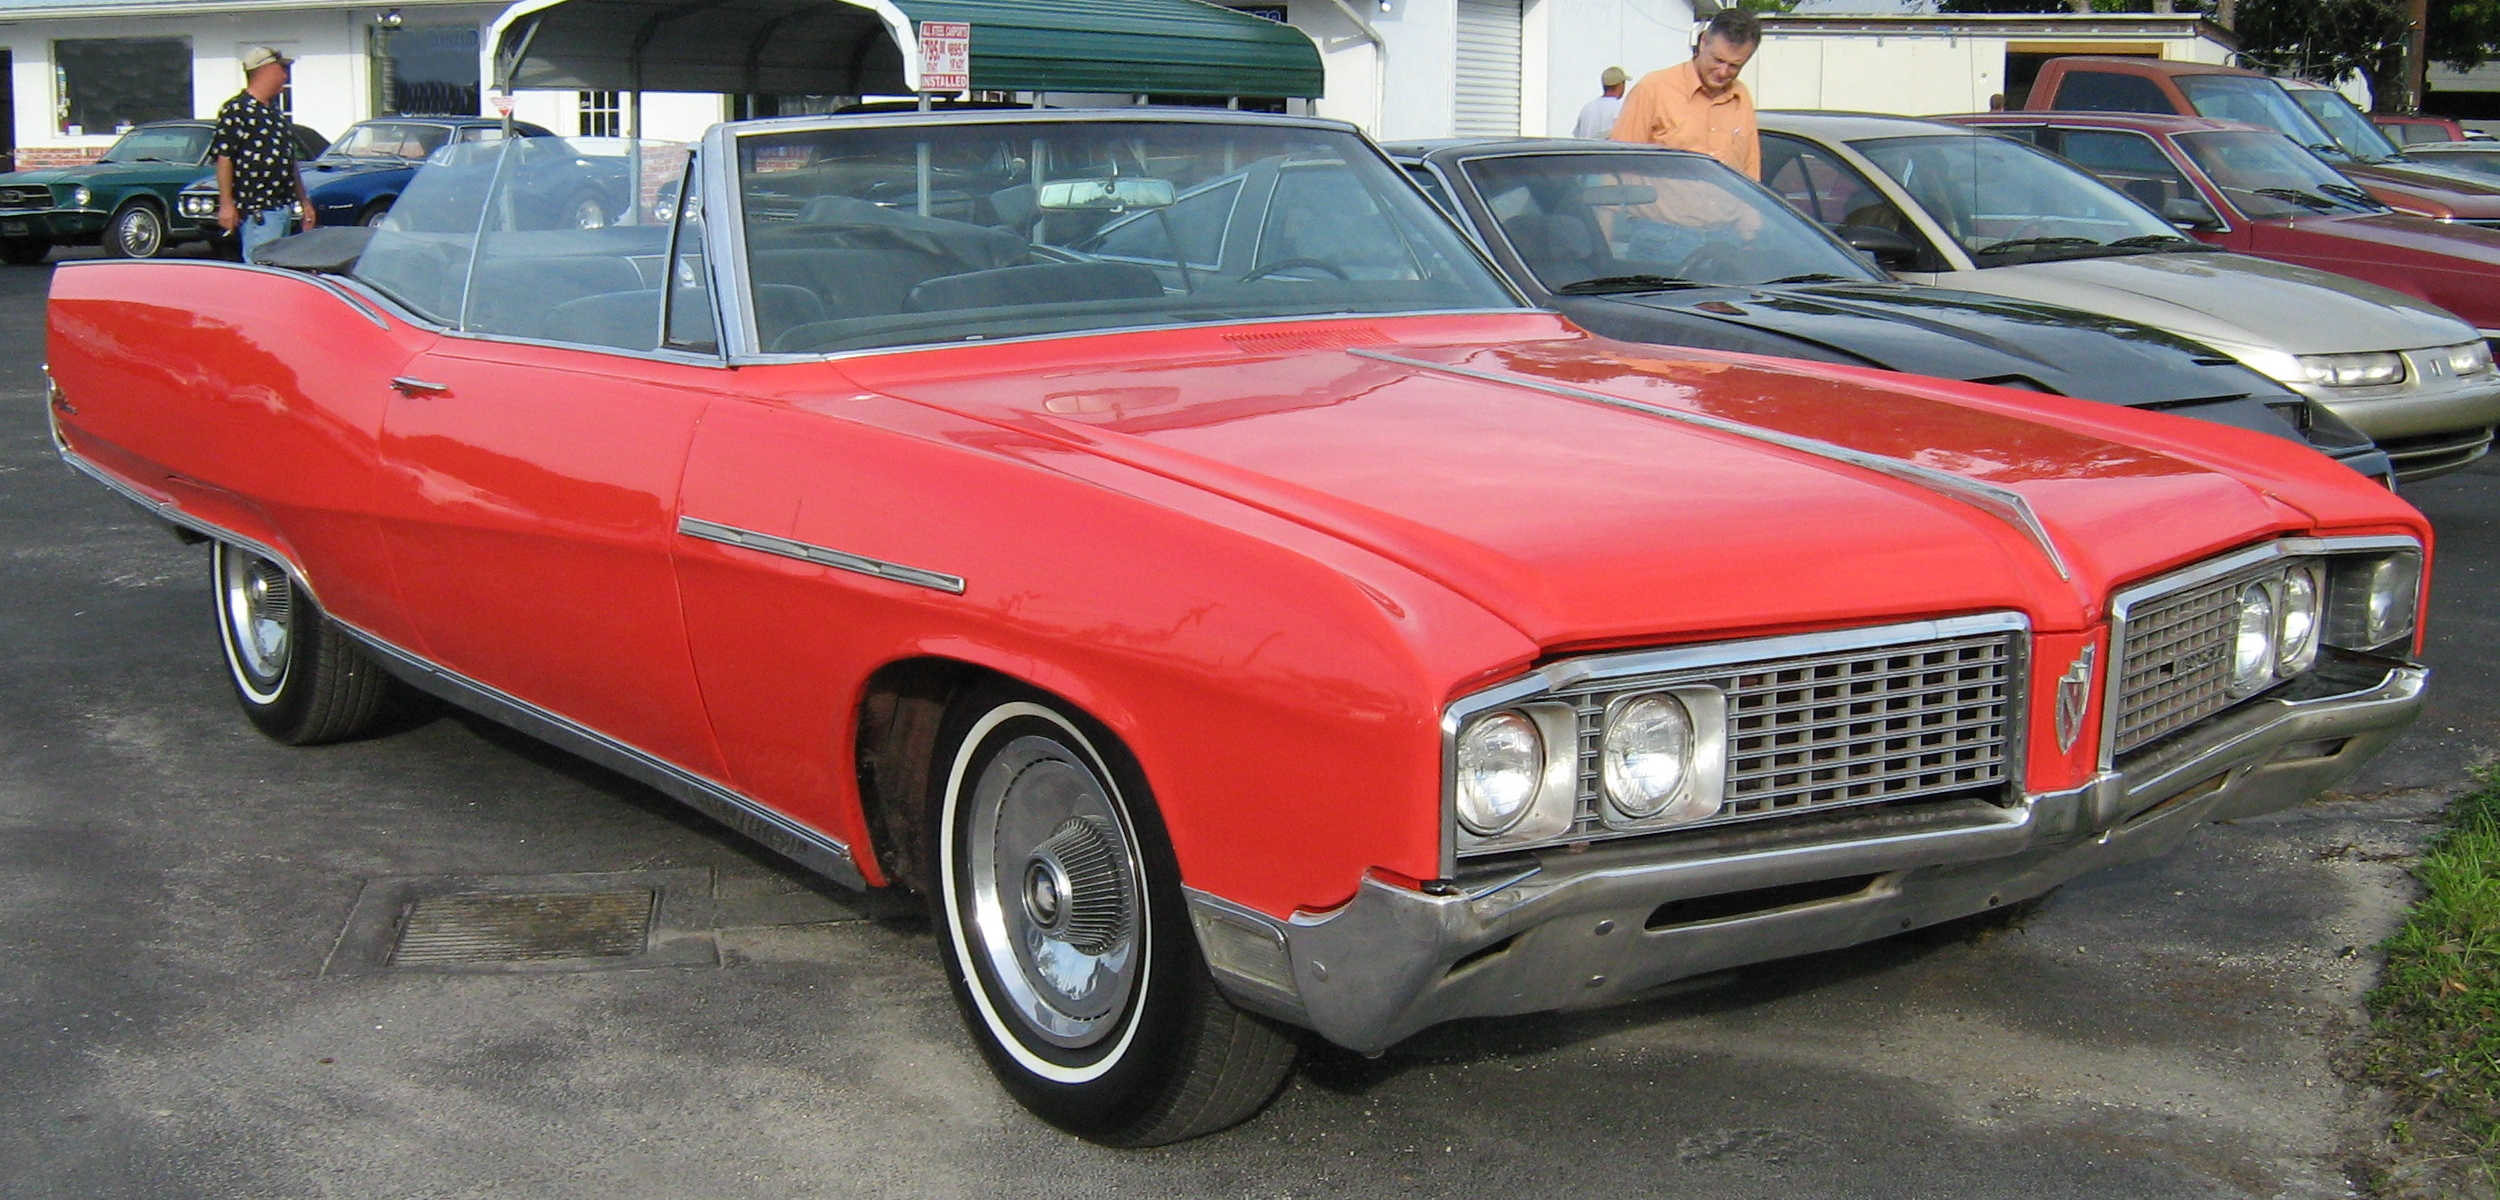 Buick Electra red #2